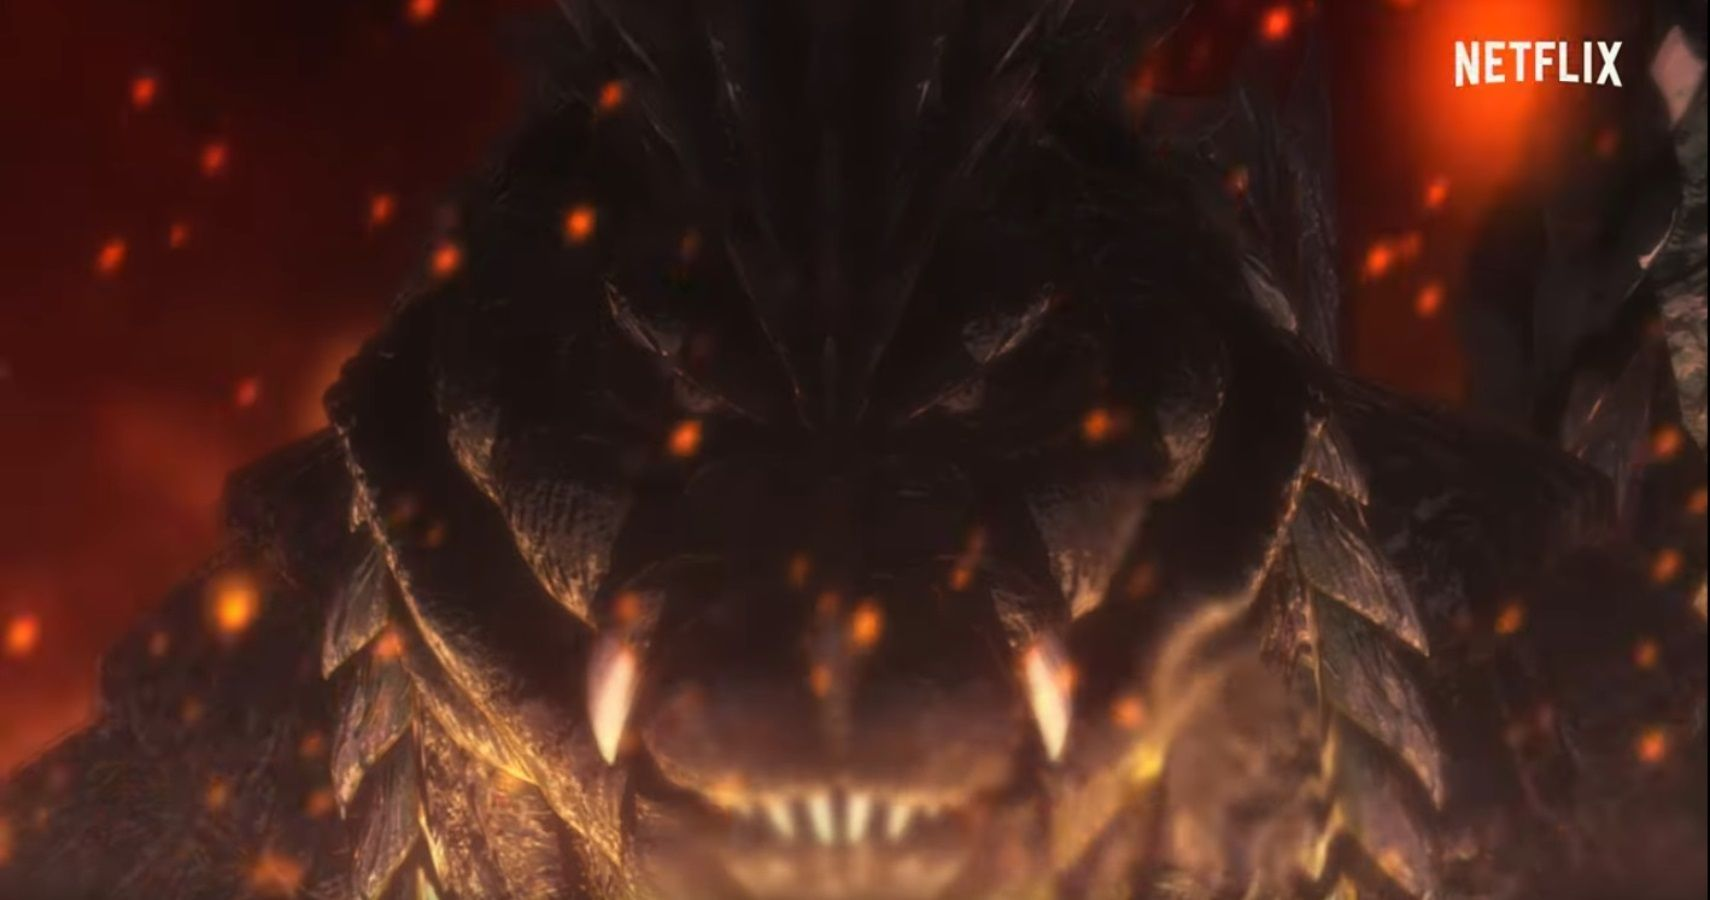 The Godzilla Singular Point Anime Is Coming To Netflix In June